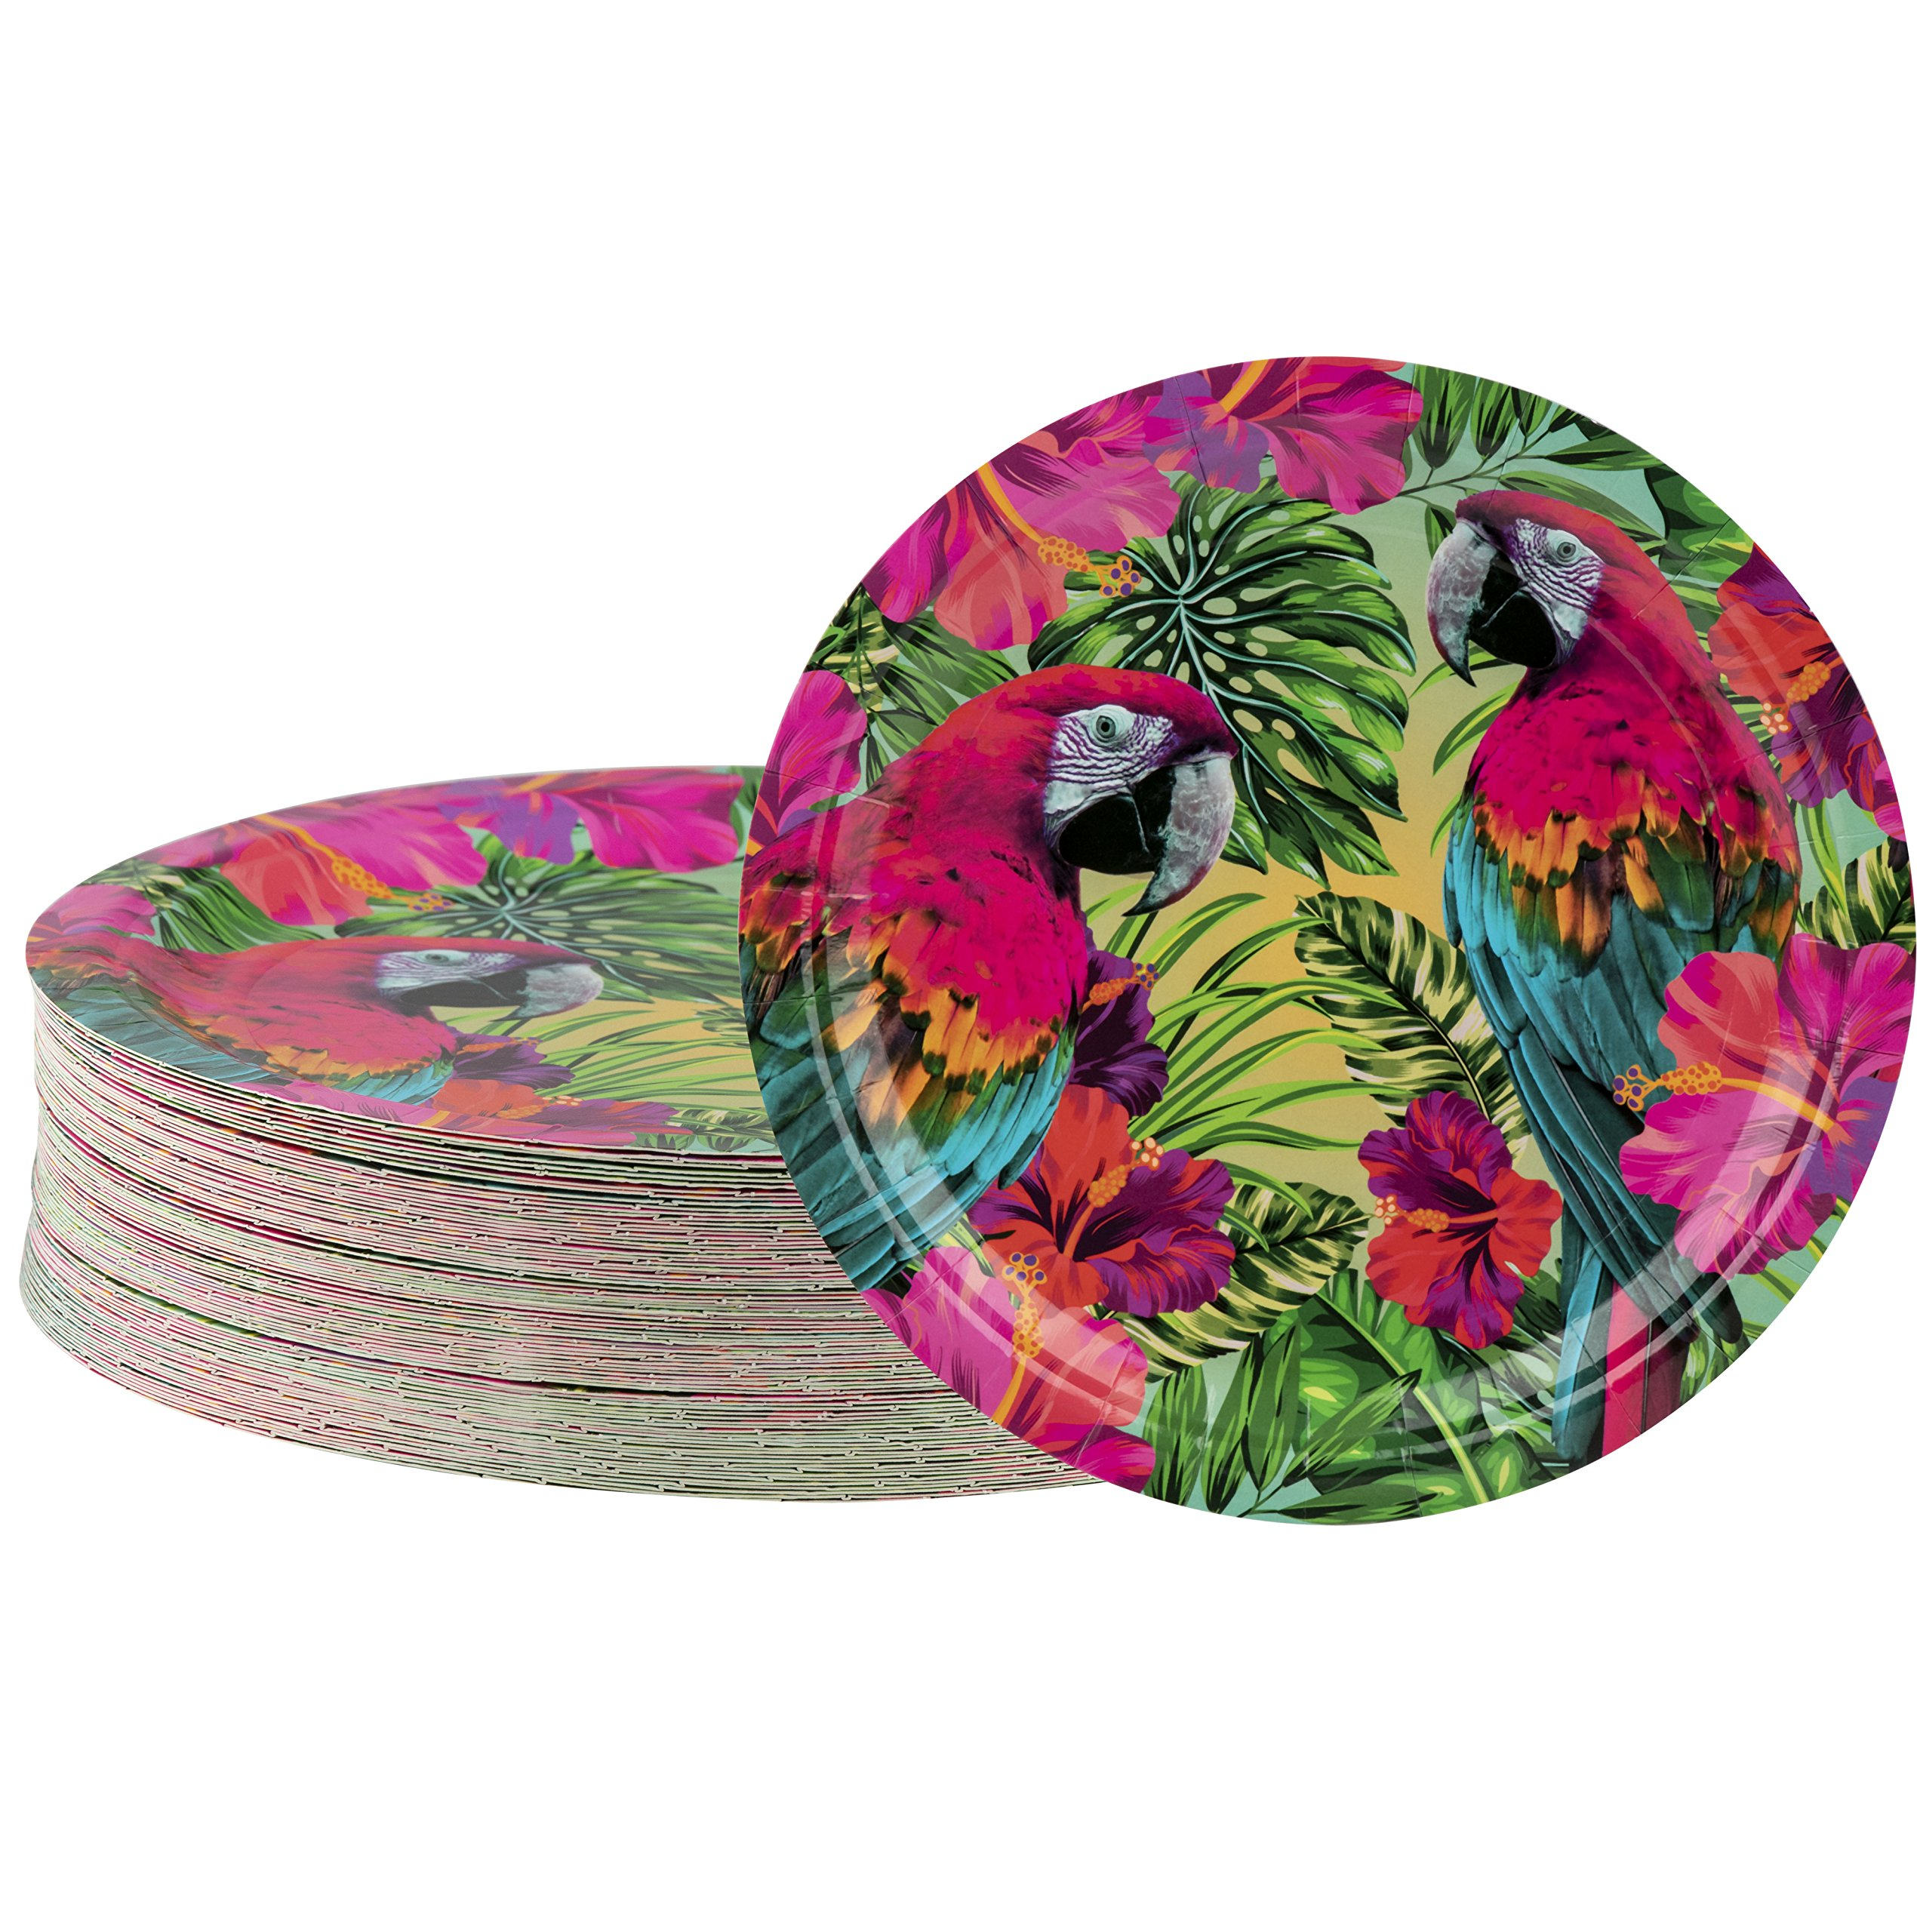 Disposable Plates - 80-Count Paper Plates, Tropical Party Supplies for Appetizer, Lunch, Dinner, and Dessert, Kids Birthdays, Parrot Design, 9 x 9 inches